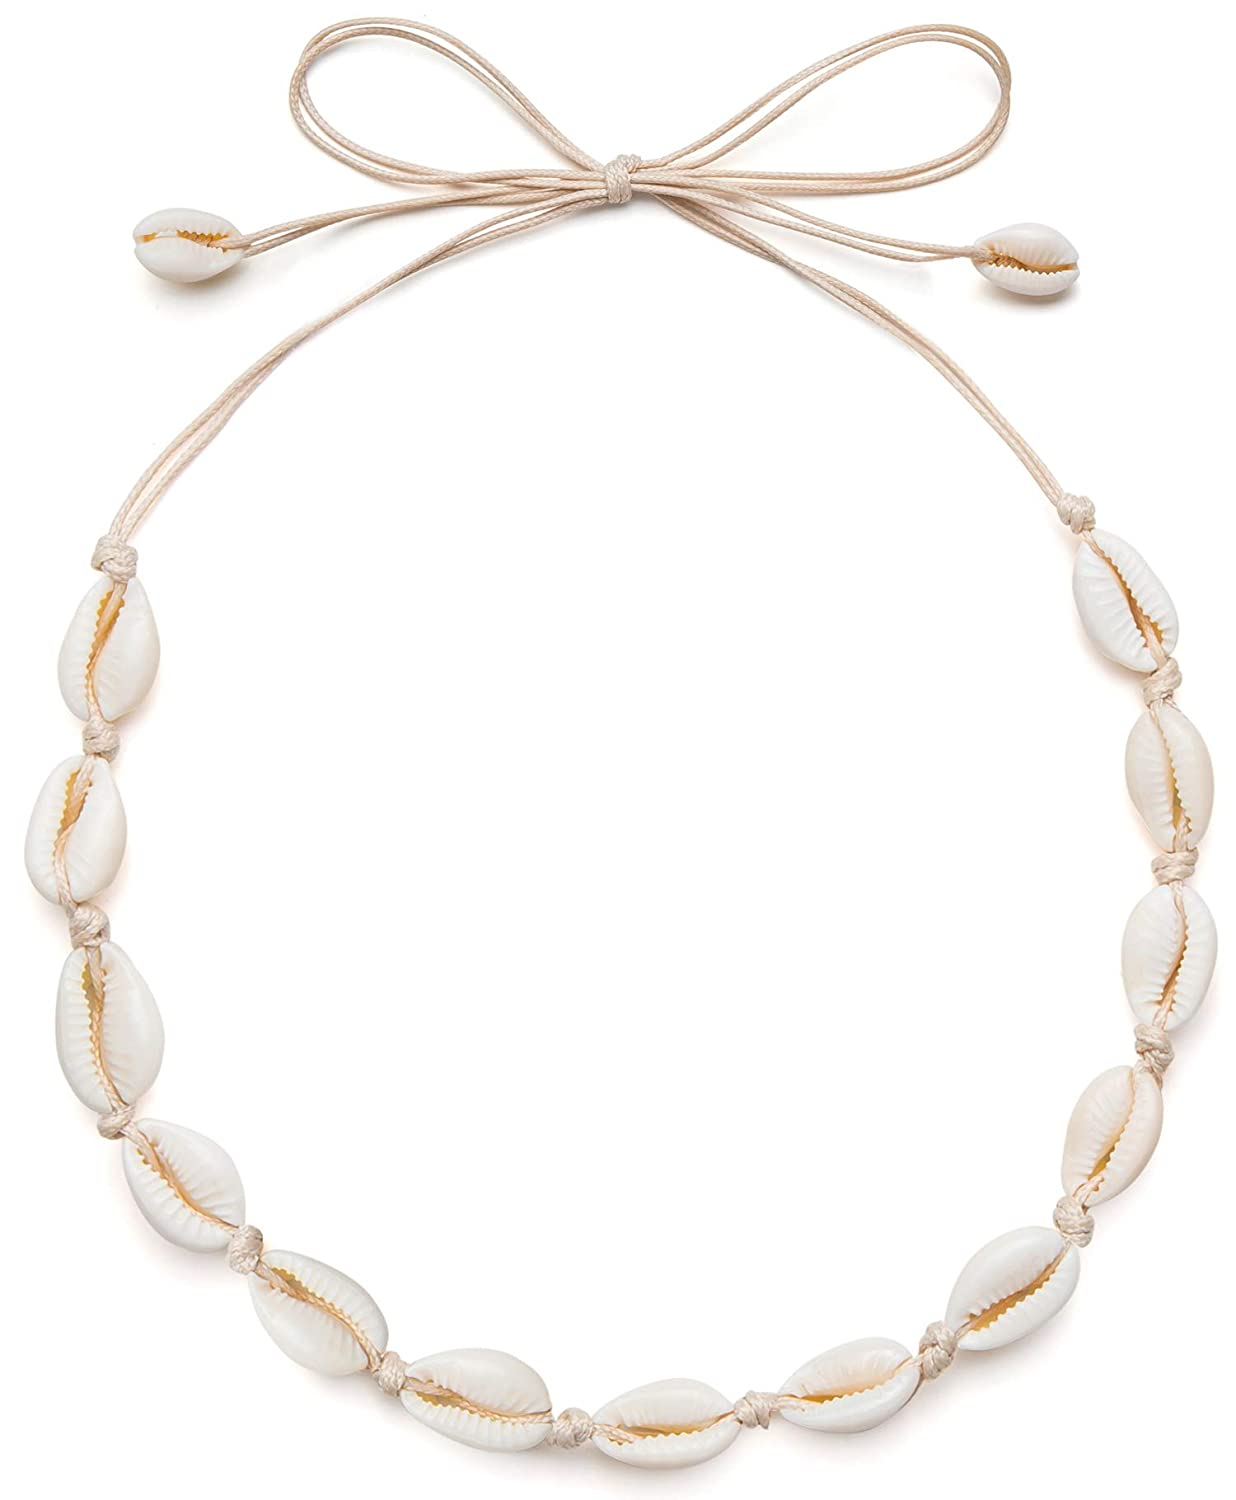 Qceasiy Sea Shell Necklace Choker for Women Summer Hawaiian Style Natural Shell Necklace